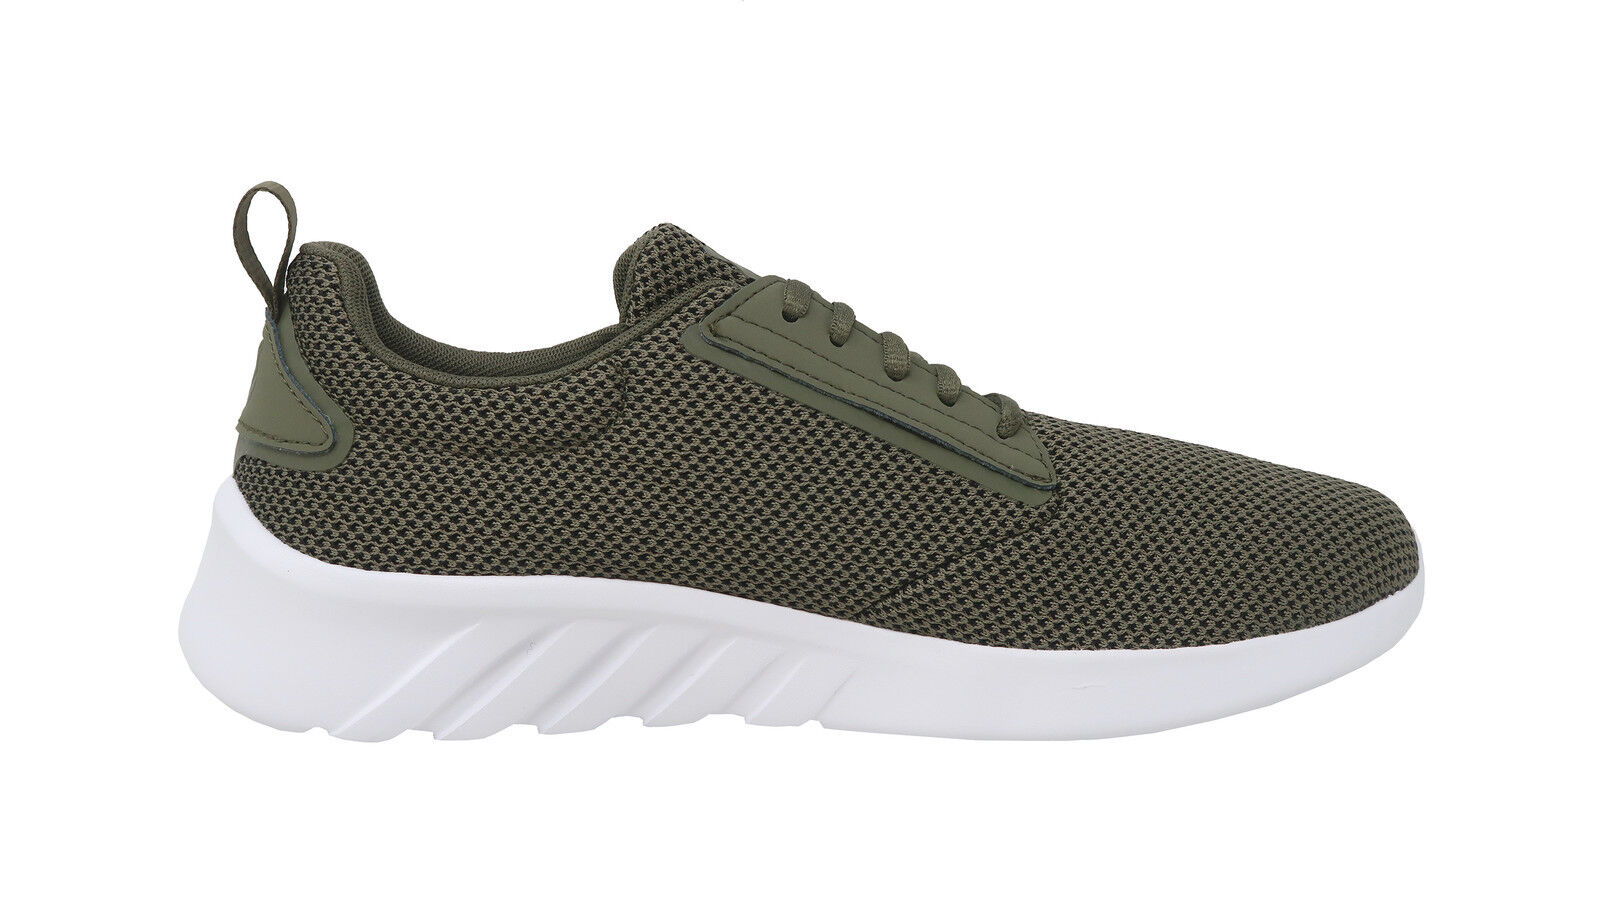 K-SWISS Shoes Mens Low Aeronaut Mesh Burnt Olive Green Green Olive White Athletic Sneaker 369195